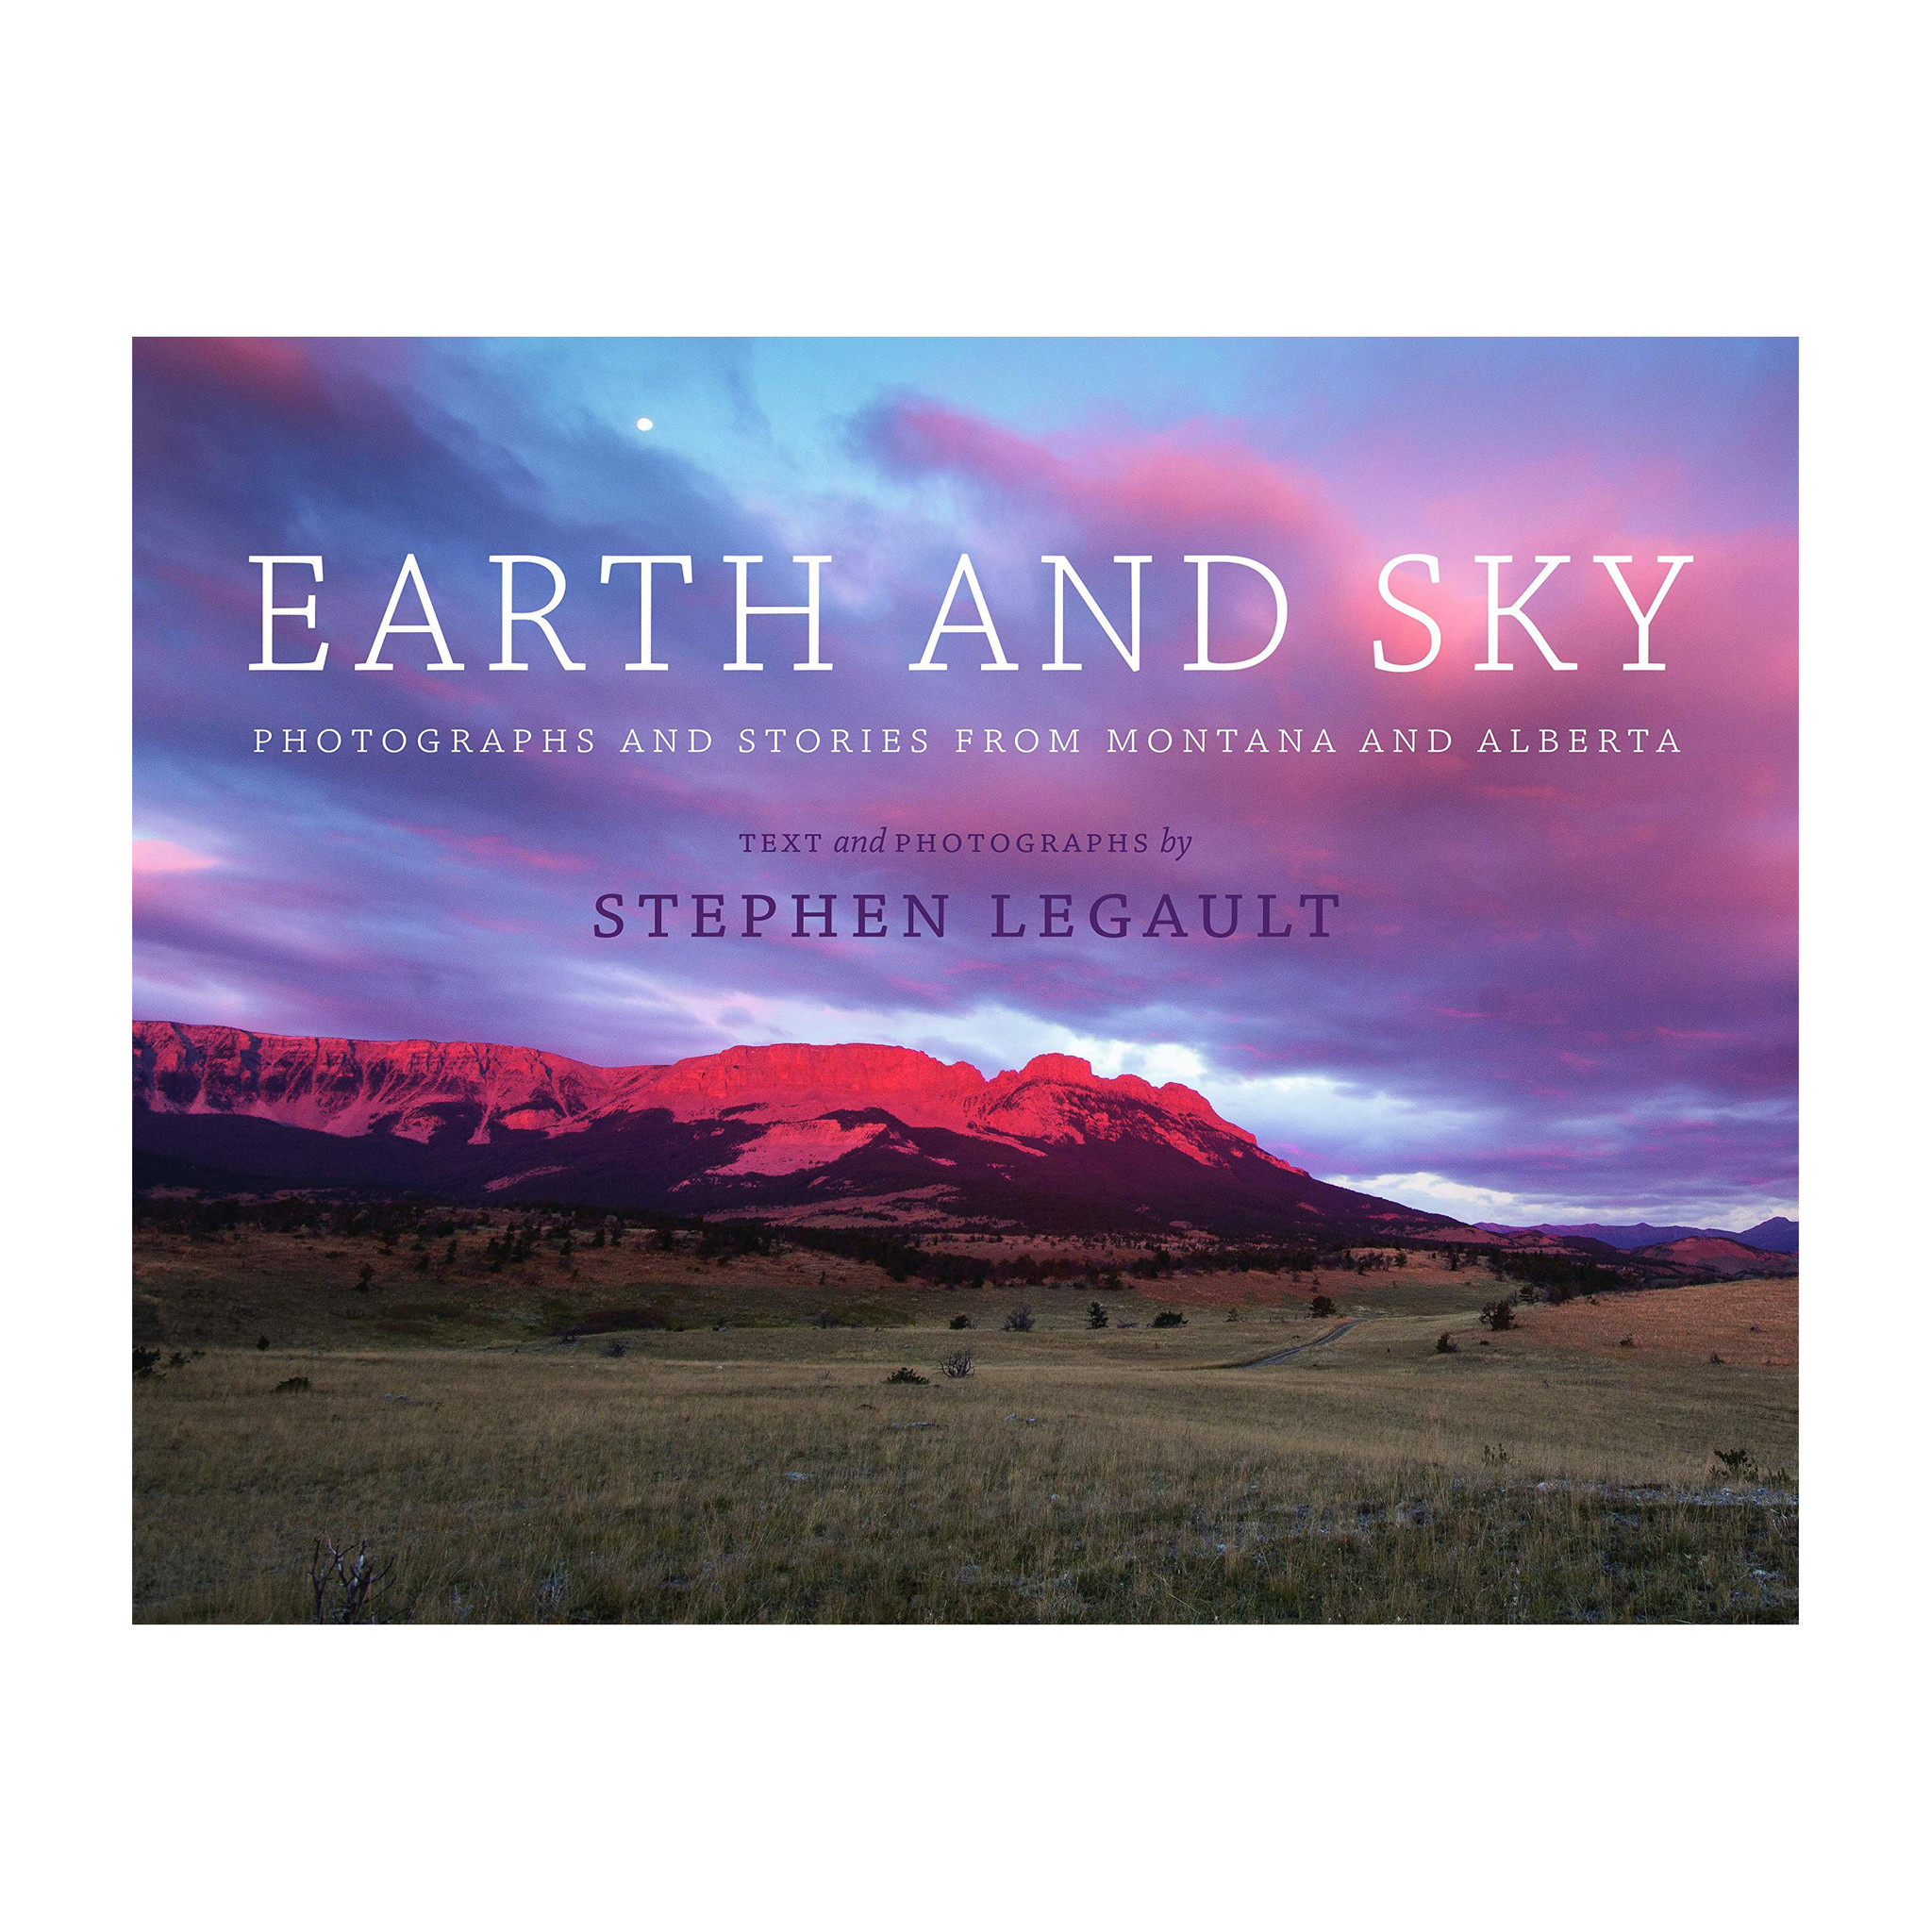 Earth and Sky: Photographs and Stories from Montana and Alberta